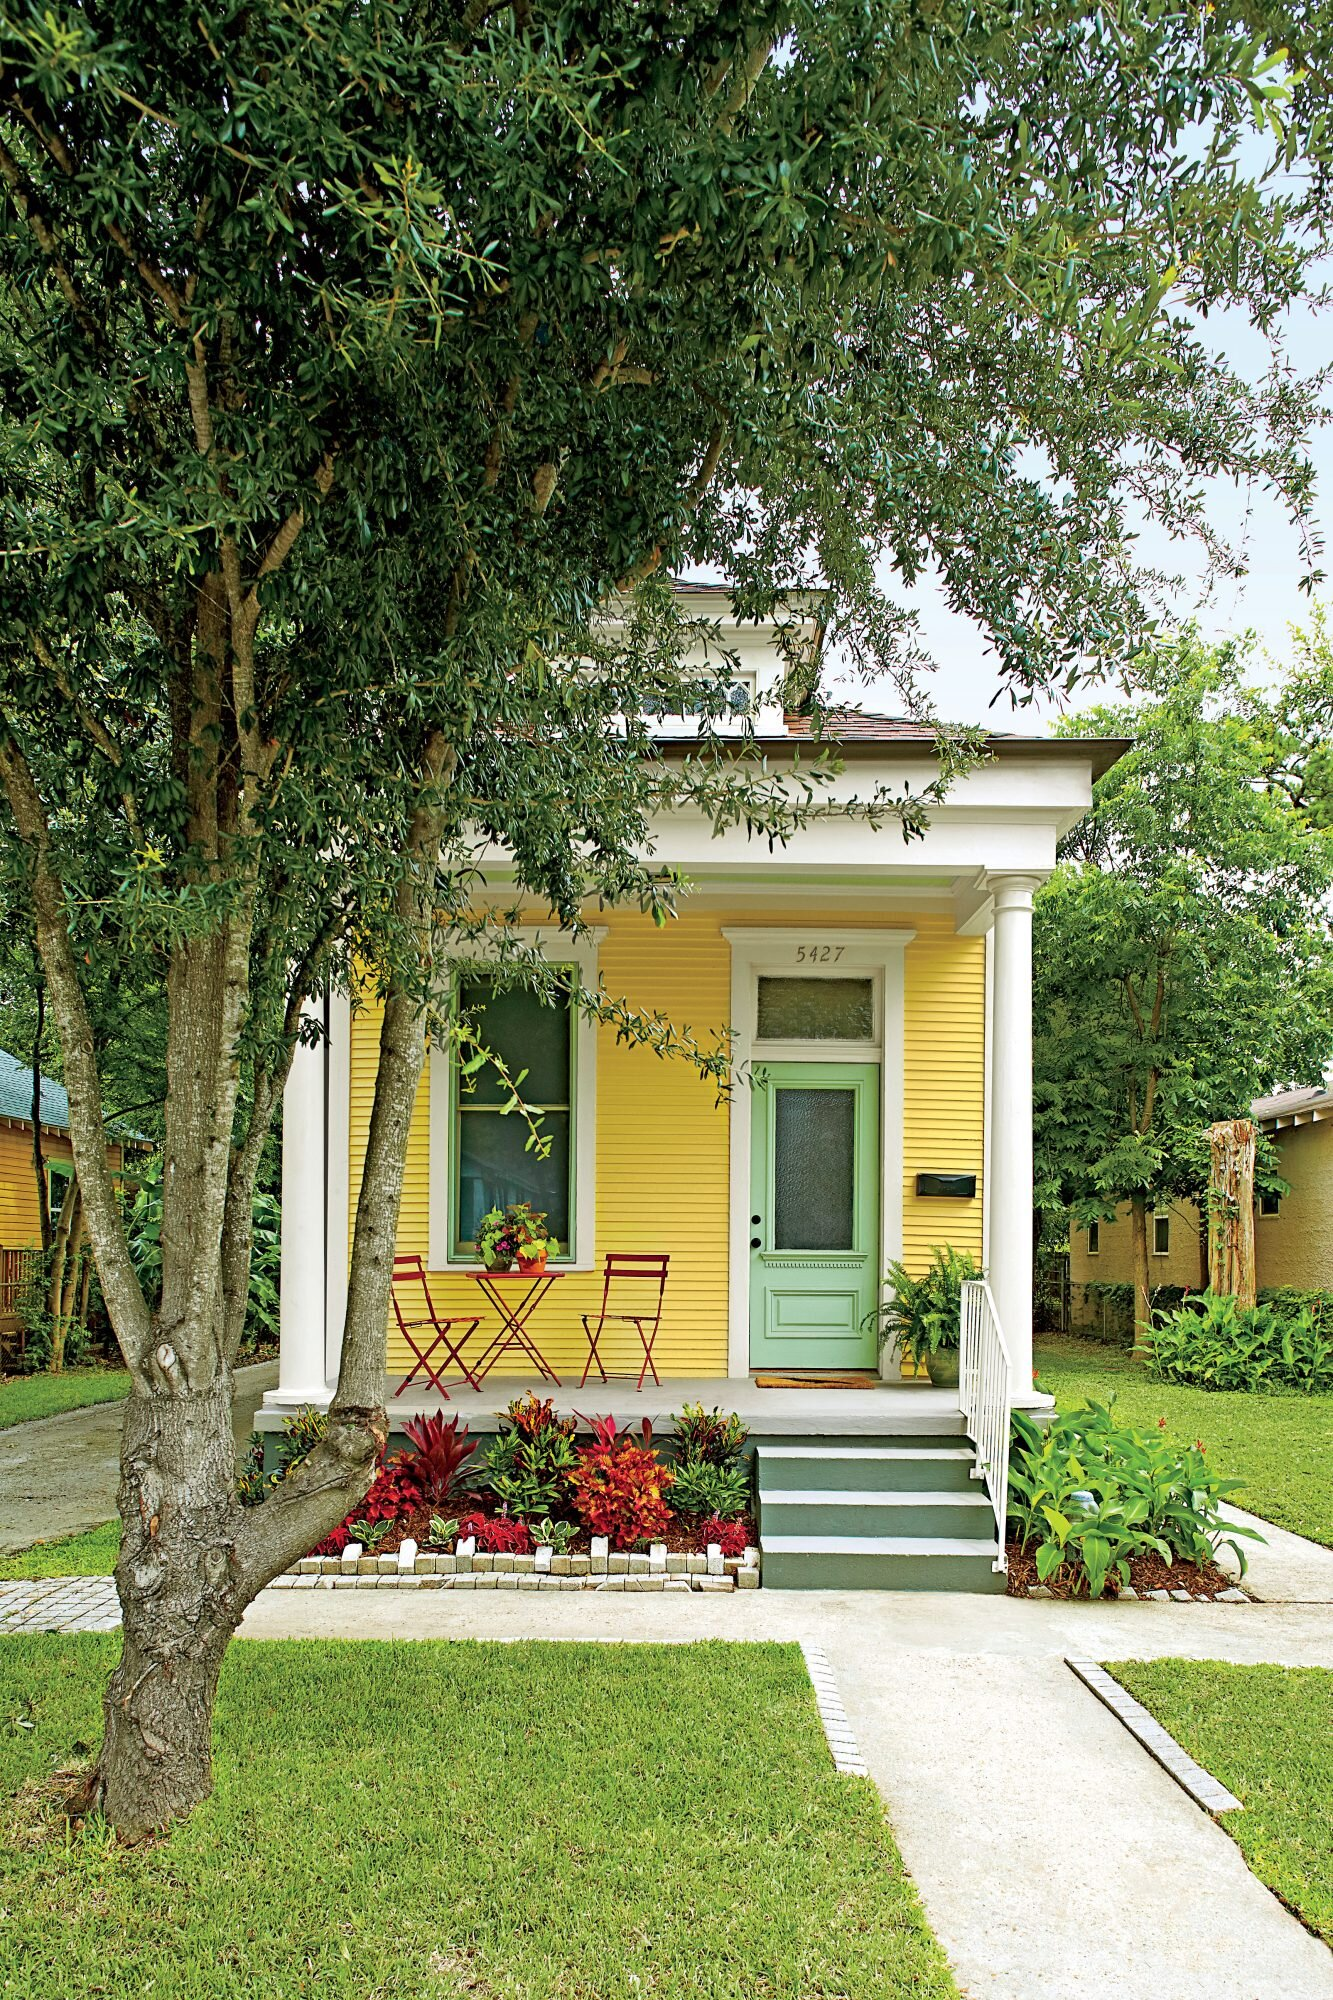 What Is a Shotgun House | Southern Living Raised Floor Plans New Orleans Homes on rehabilitation center floor plans, new orleans bedrooms, old new orleans house plans, lakeview home floor plans, carolina home floor plans, chesapeake home floor plans, austin home floor plans, hartford home floor plans, huntington home floor plans, massachusetts home floor plans, cape cod home house plans, va hospital floor plans, tampa bay home floor plans, new orleans inside homes, connecticut home floor plans, palm springs home floor plans, orleans builders floor plans, riverside home floor plans, bakersfield home floor plans, cambridge home floor plans,